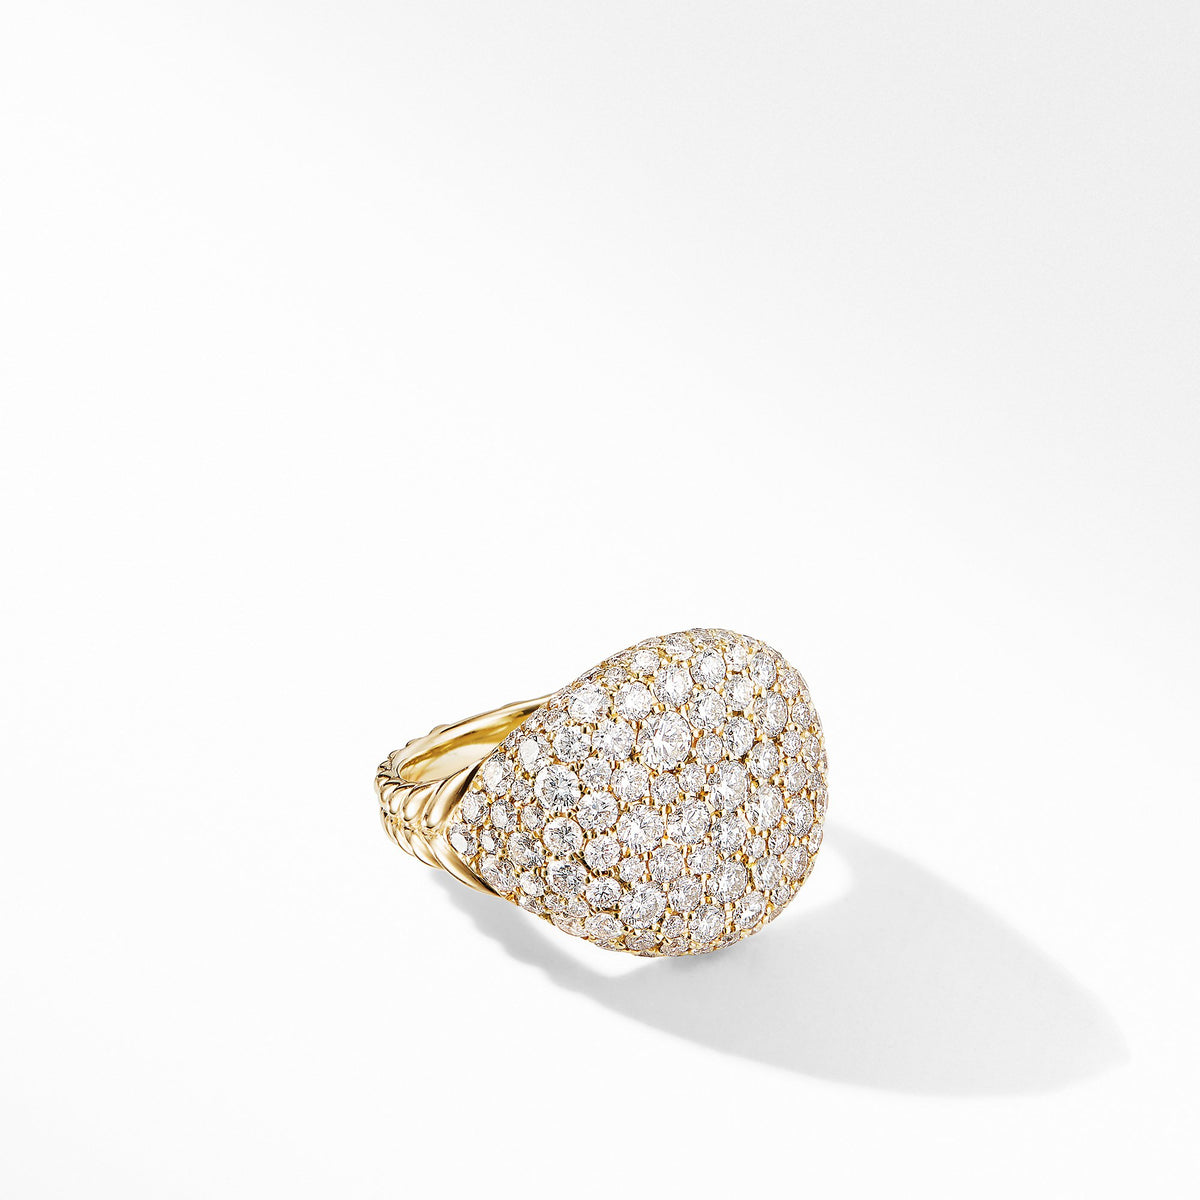 Chevron Pinky Ring in 18K Yellow Gold with  Pave Diamonds